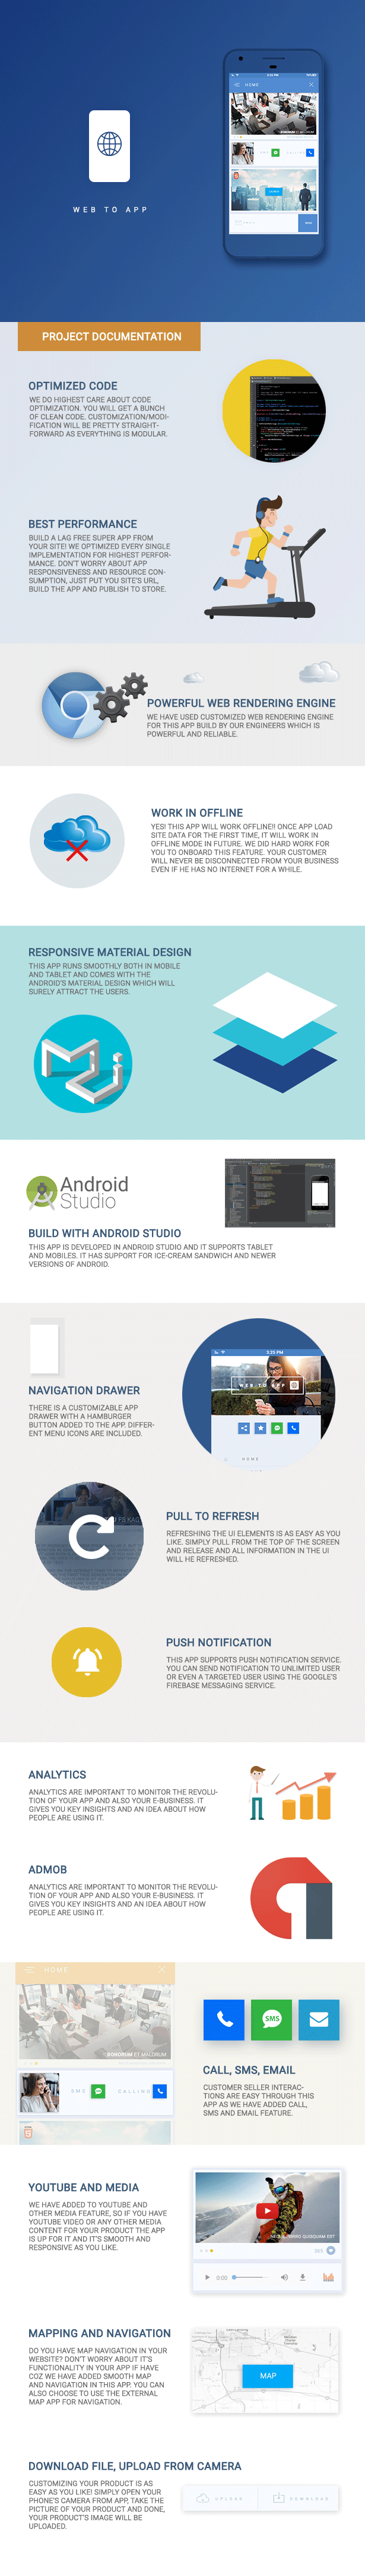 http://mproducts.asholei.com/public_html/web-app/android/graphics/doc-header.png